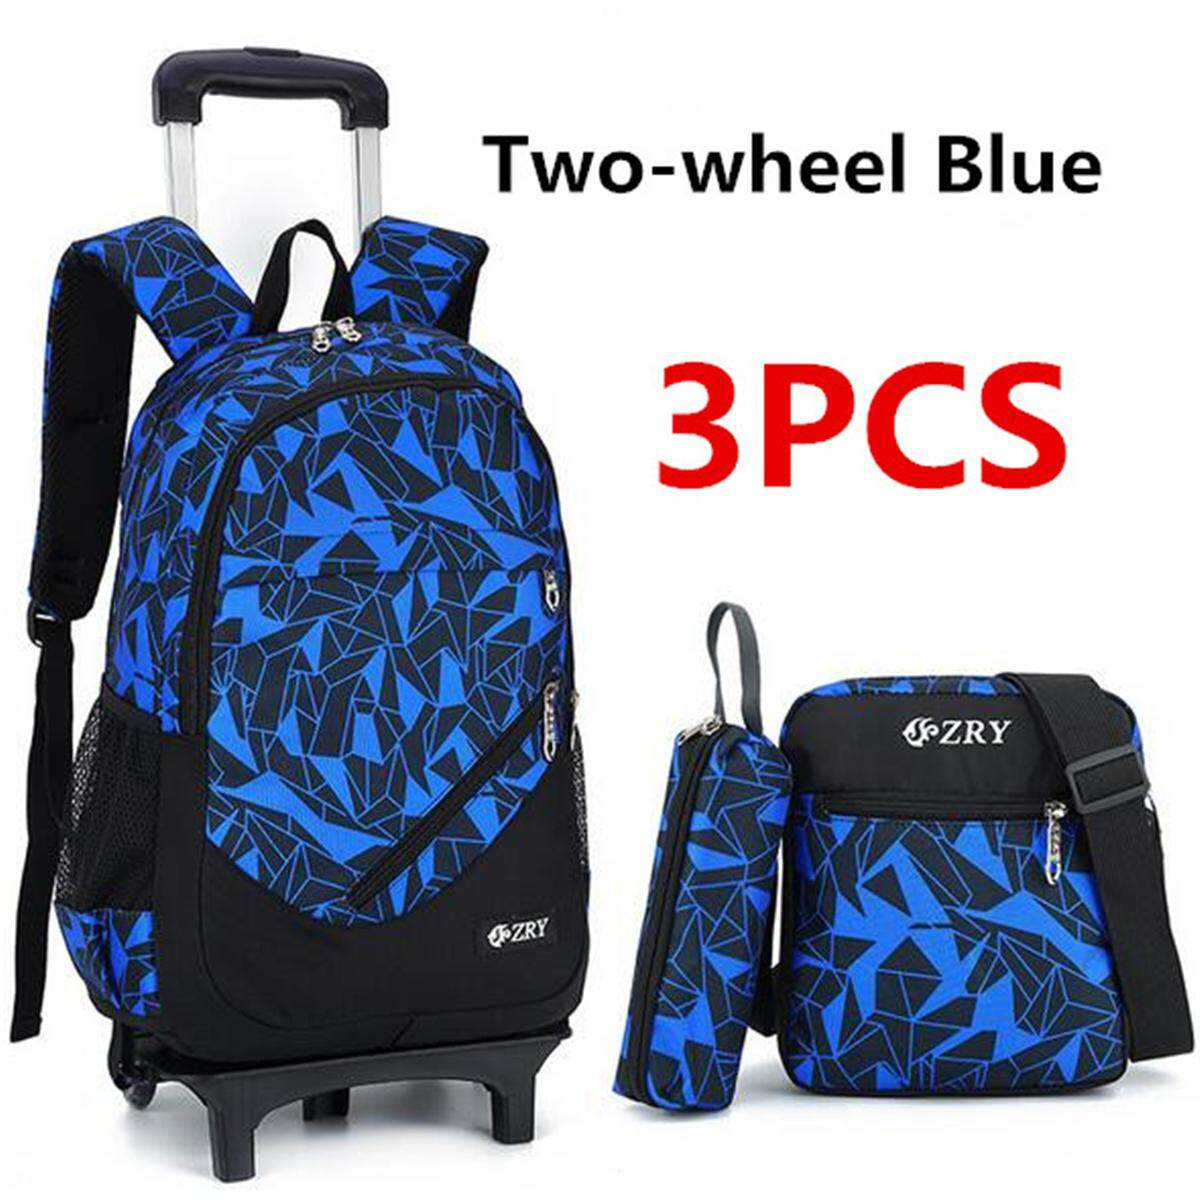 d7425af2dd 3Pcs Kids Teenagers School Bags Boy Removable Trolley Backpack Bag With  Wheels  2 wheel